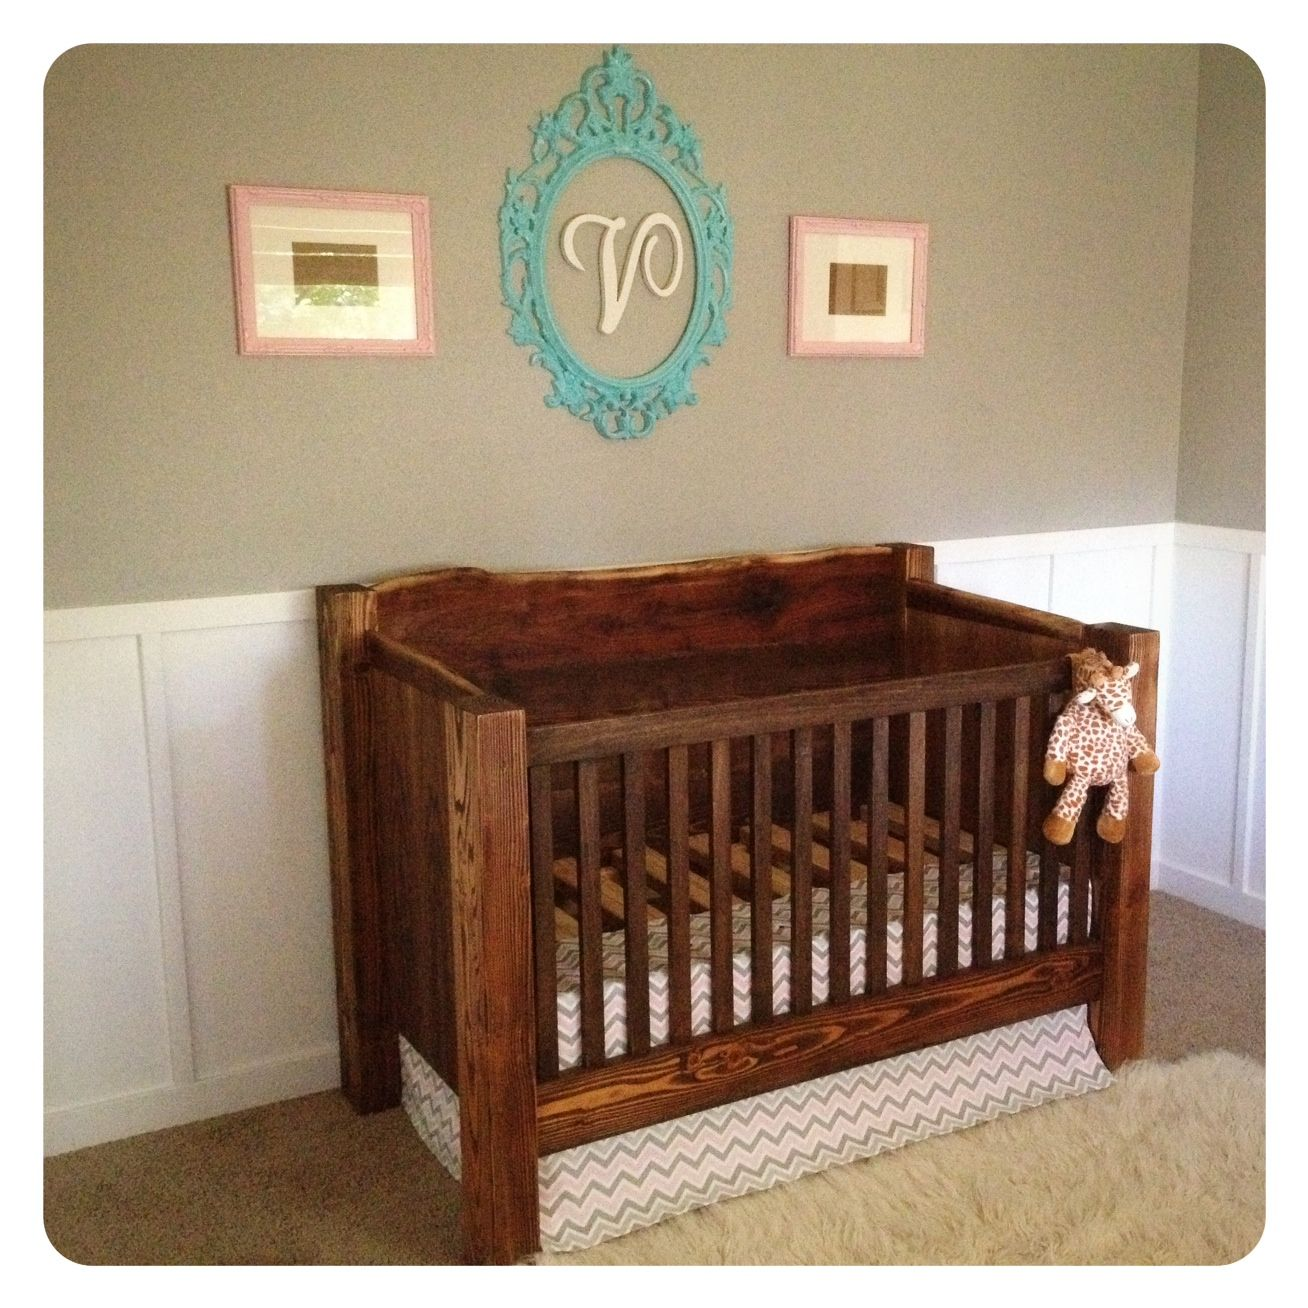 Baby cribs what to look for - This Would Probably Be Similar To What The Headboard Footboard One I Have Been Thinking Of Might Look Like Hand Built Crib